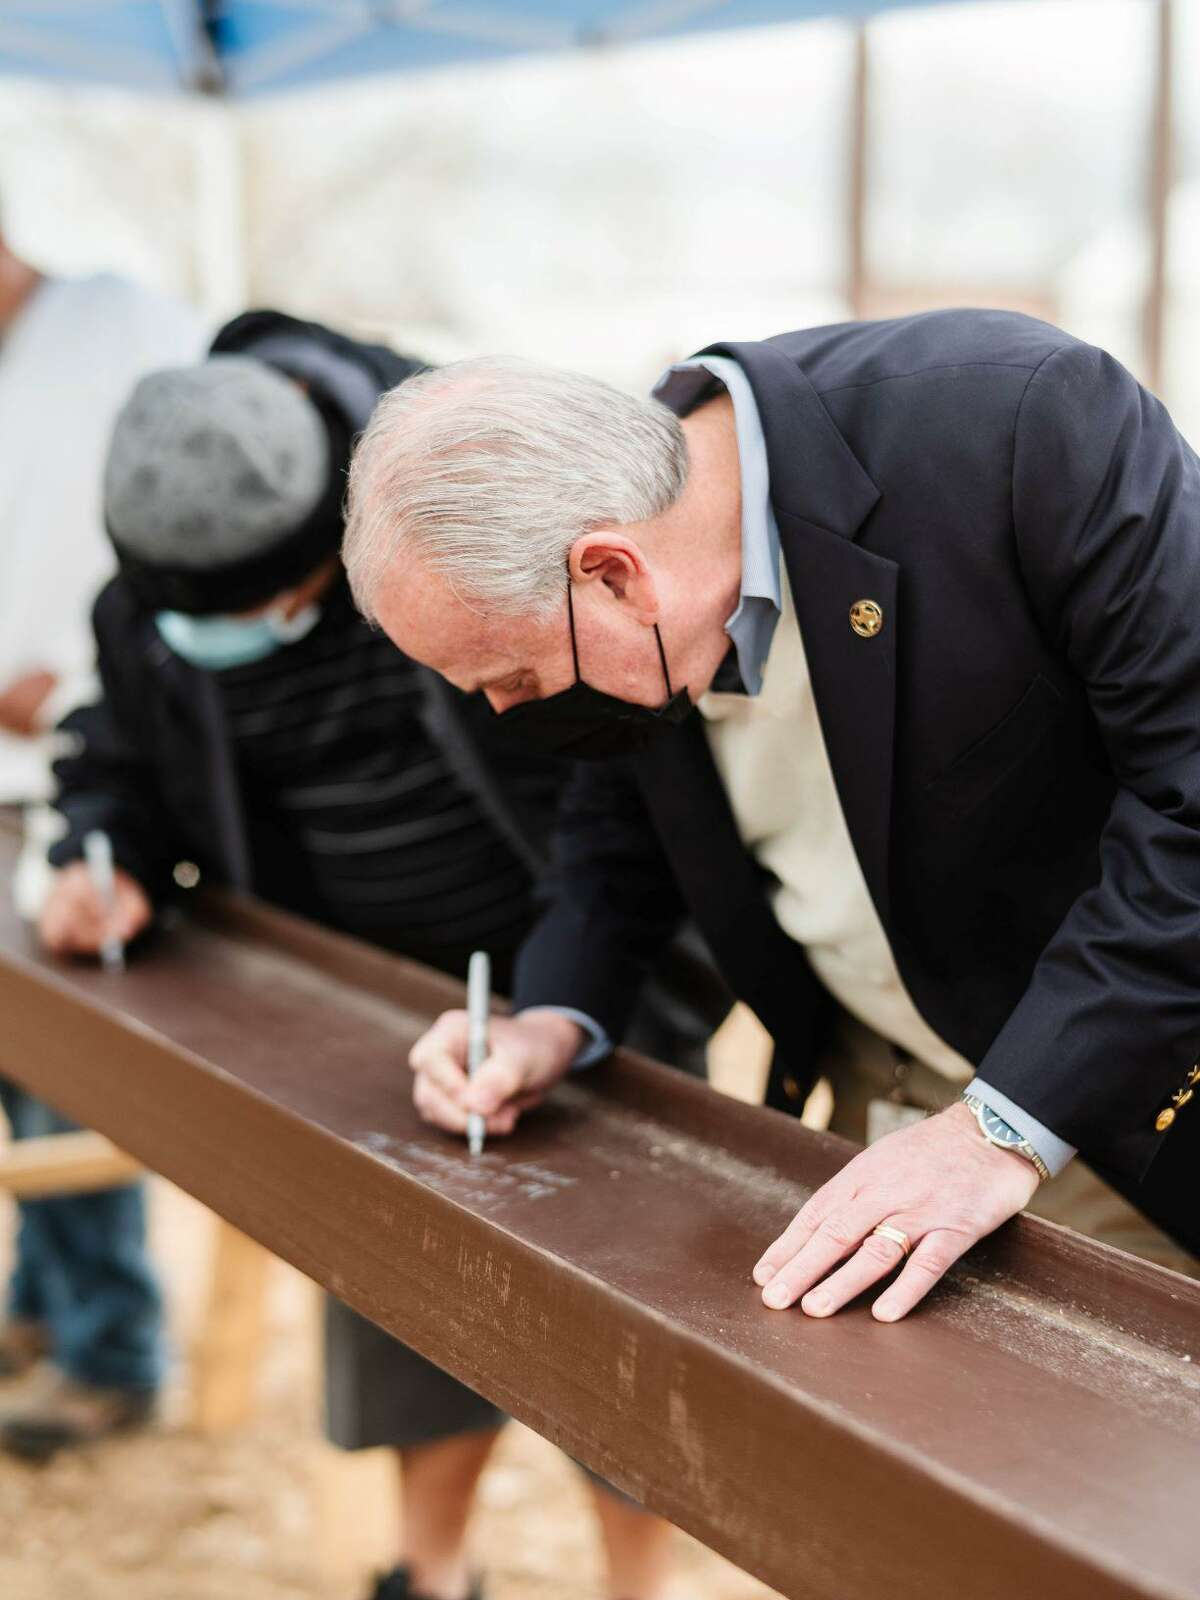 Attack Poverty's new community center in Rosenberg is currently under construction. A beam-signing event took place Feb. 5, 2021.